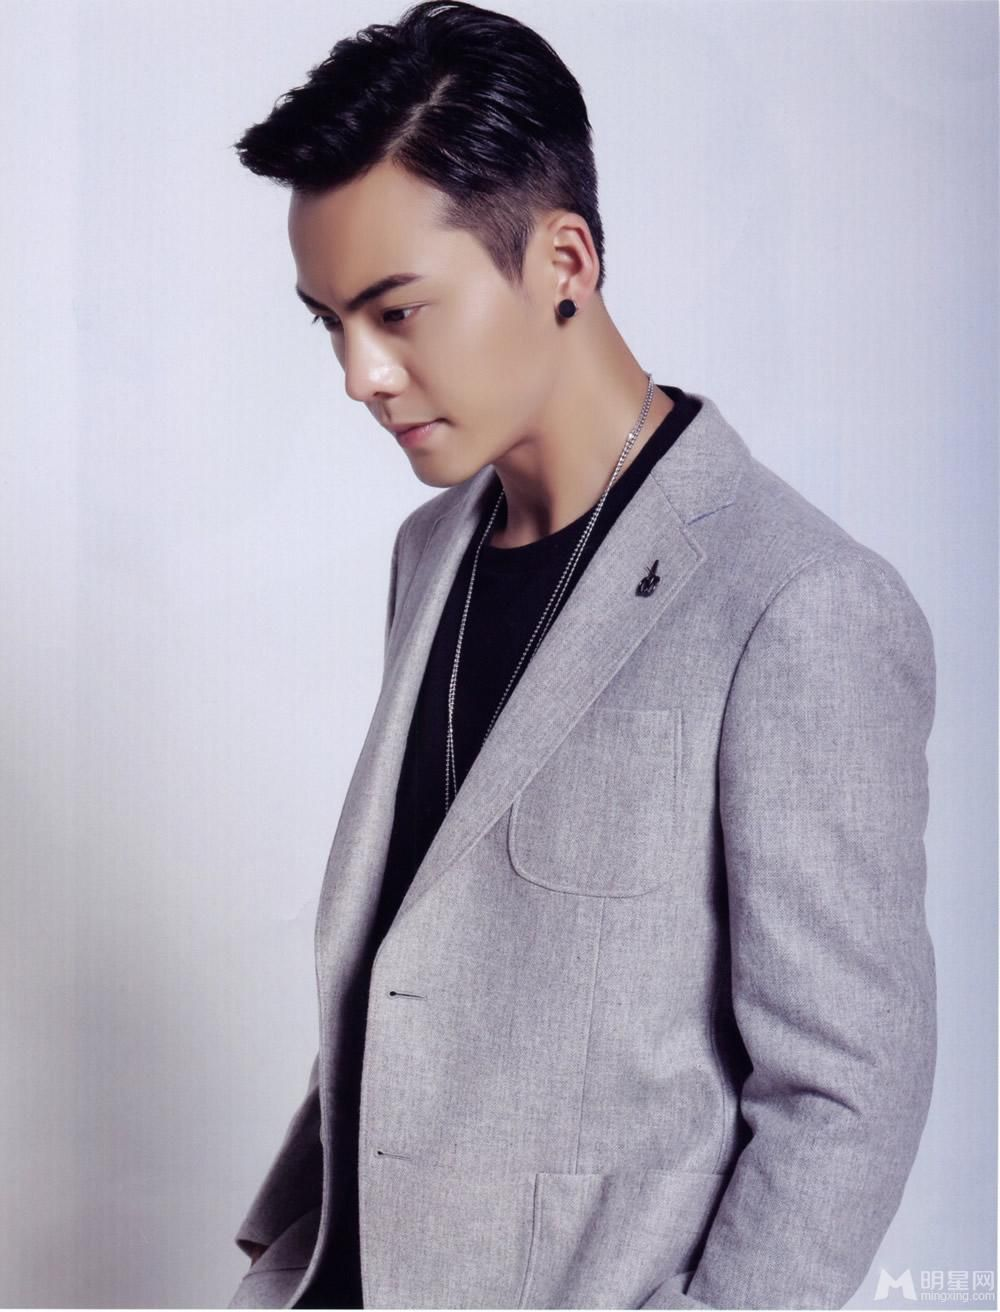 hair styles asian william chan 陳偉霆 陈伟霆 chan wai ting chen wei ting 6703